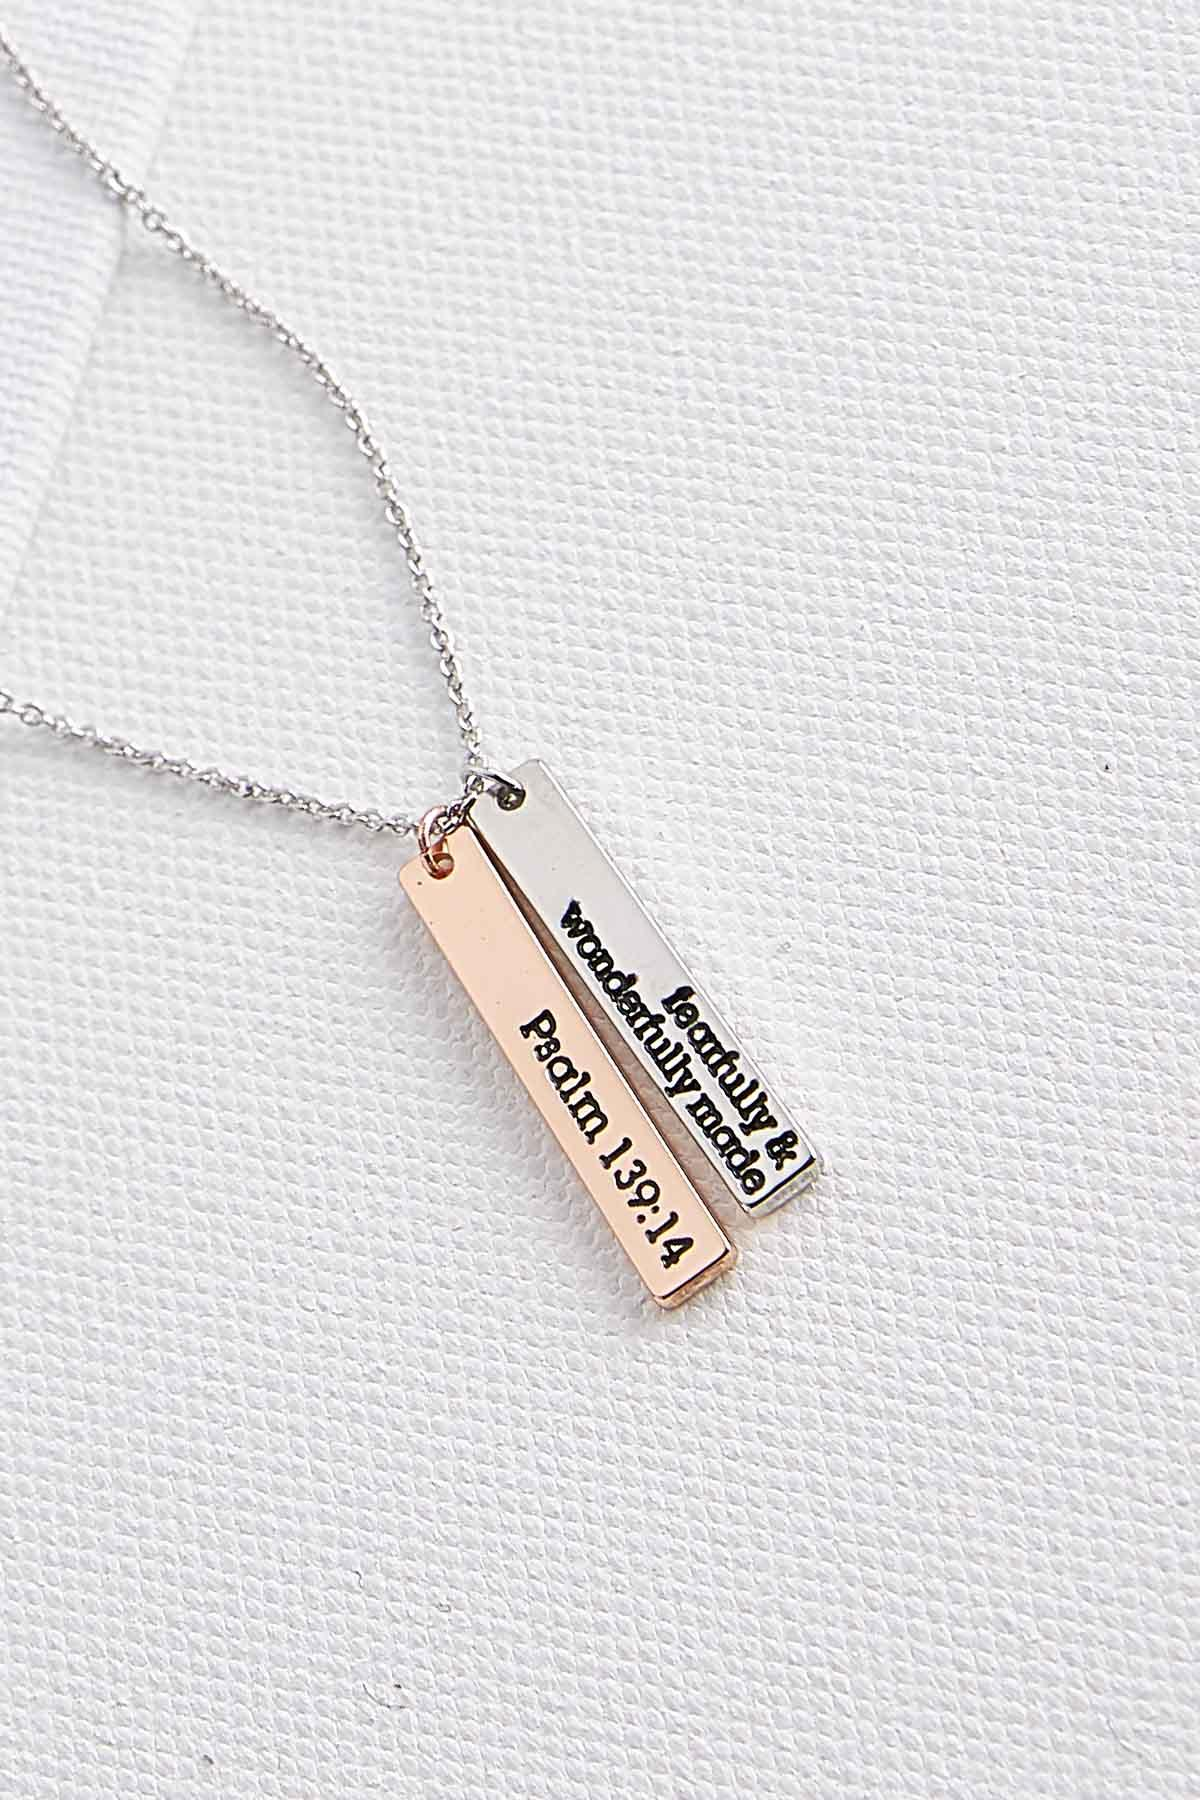 Fearfully Made Pendant Necklace